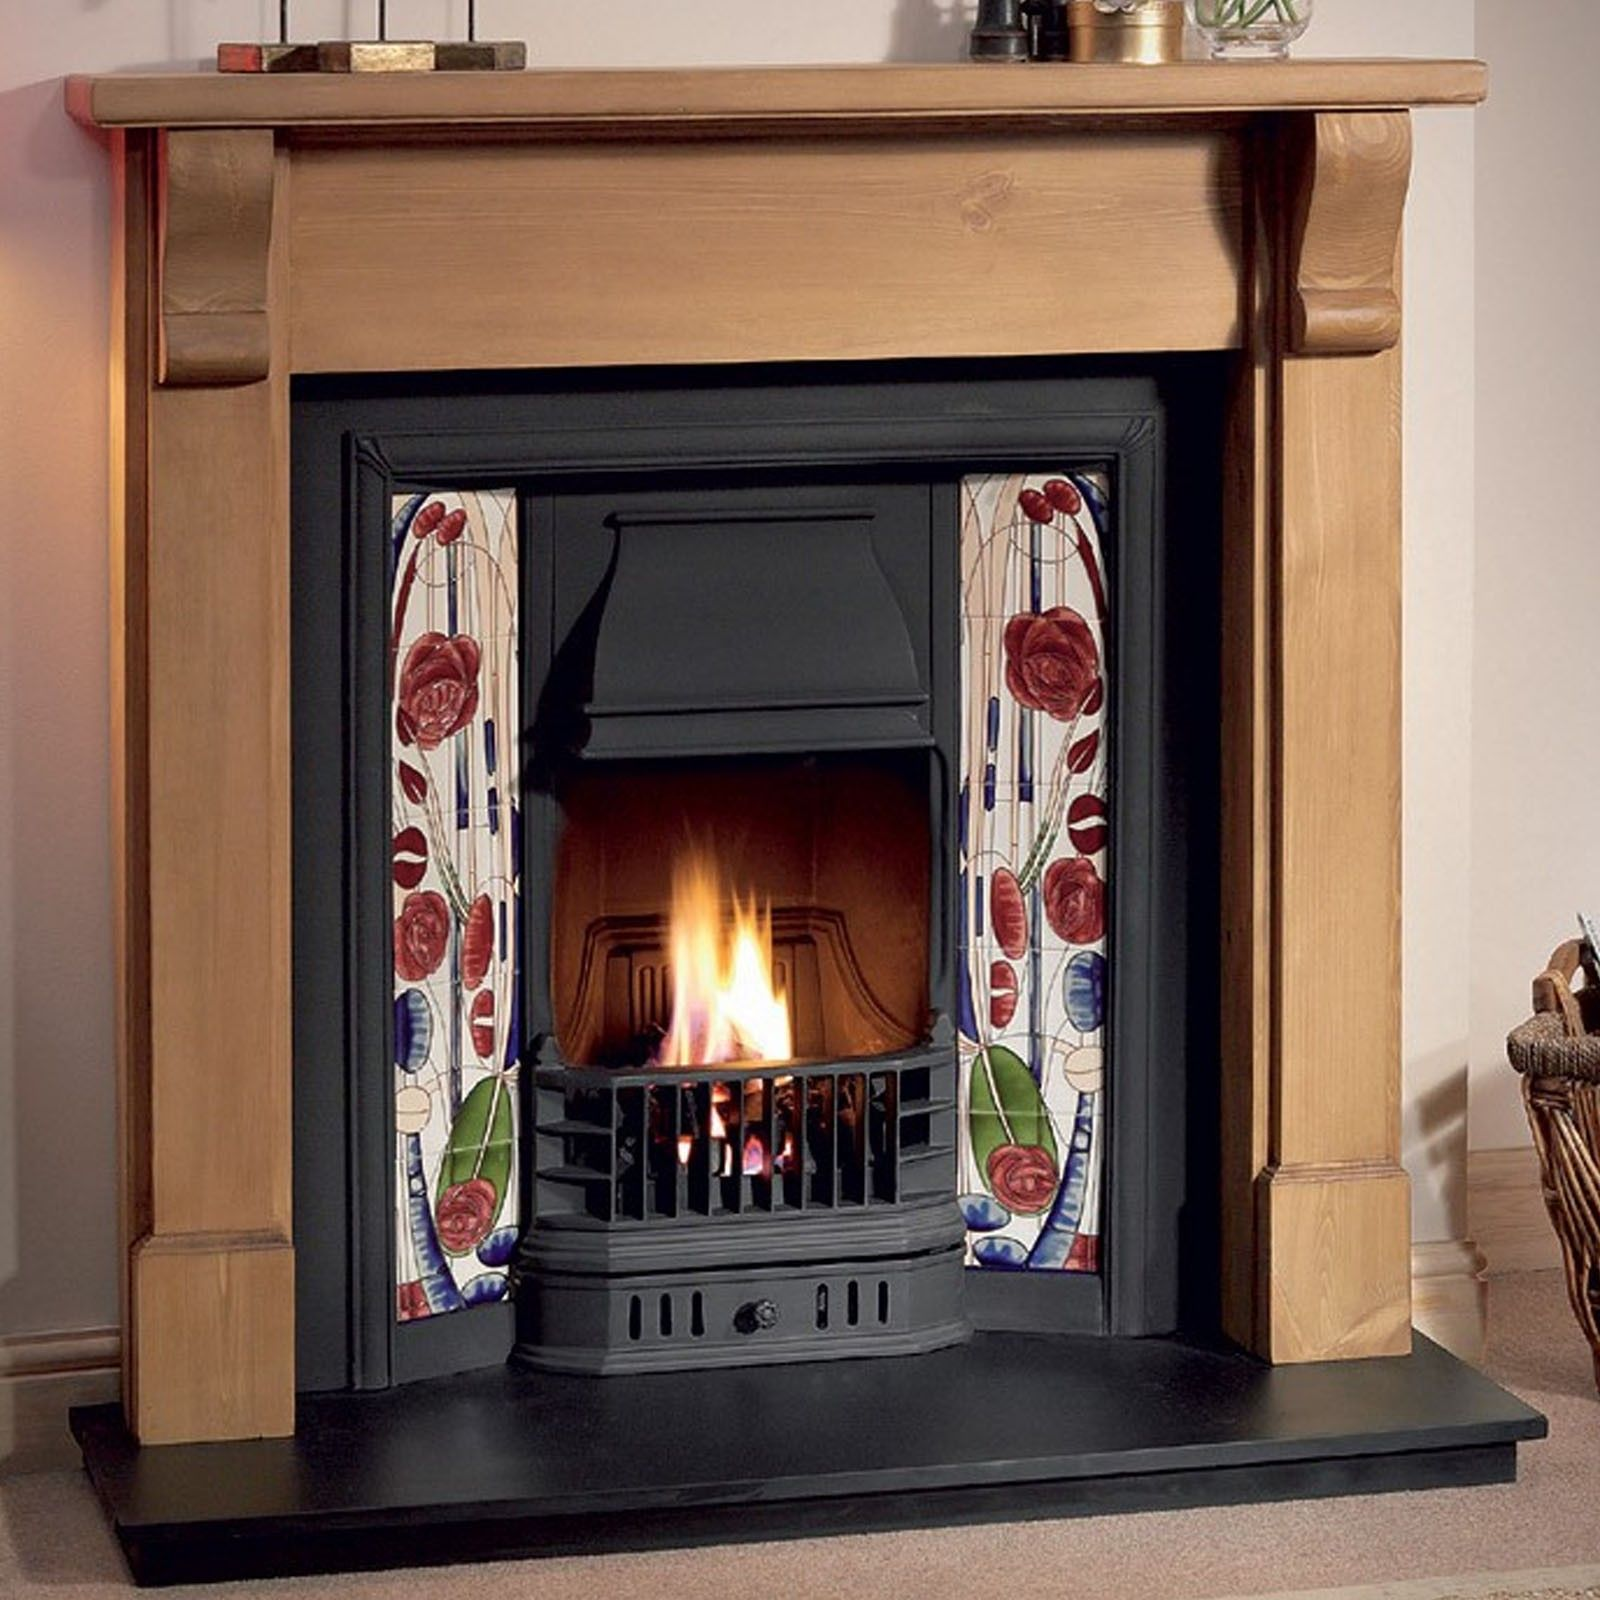 new edwardian looking fireplace not much cheaper than restored